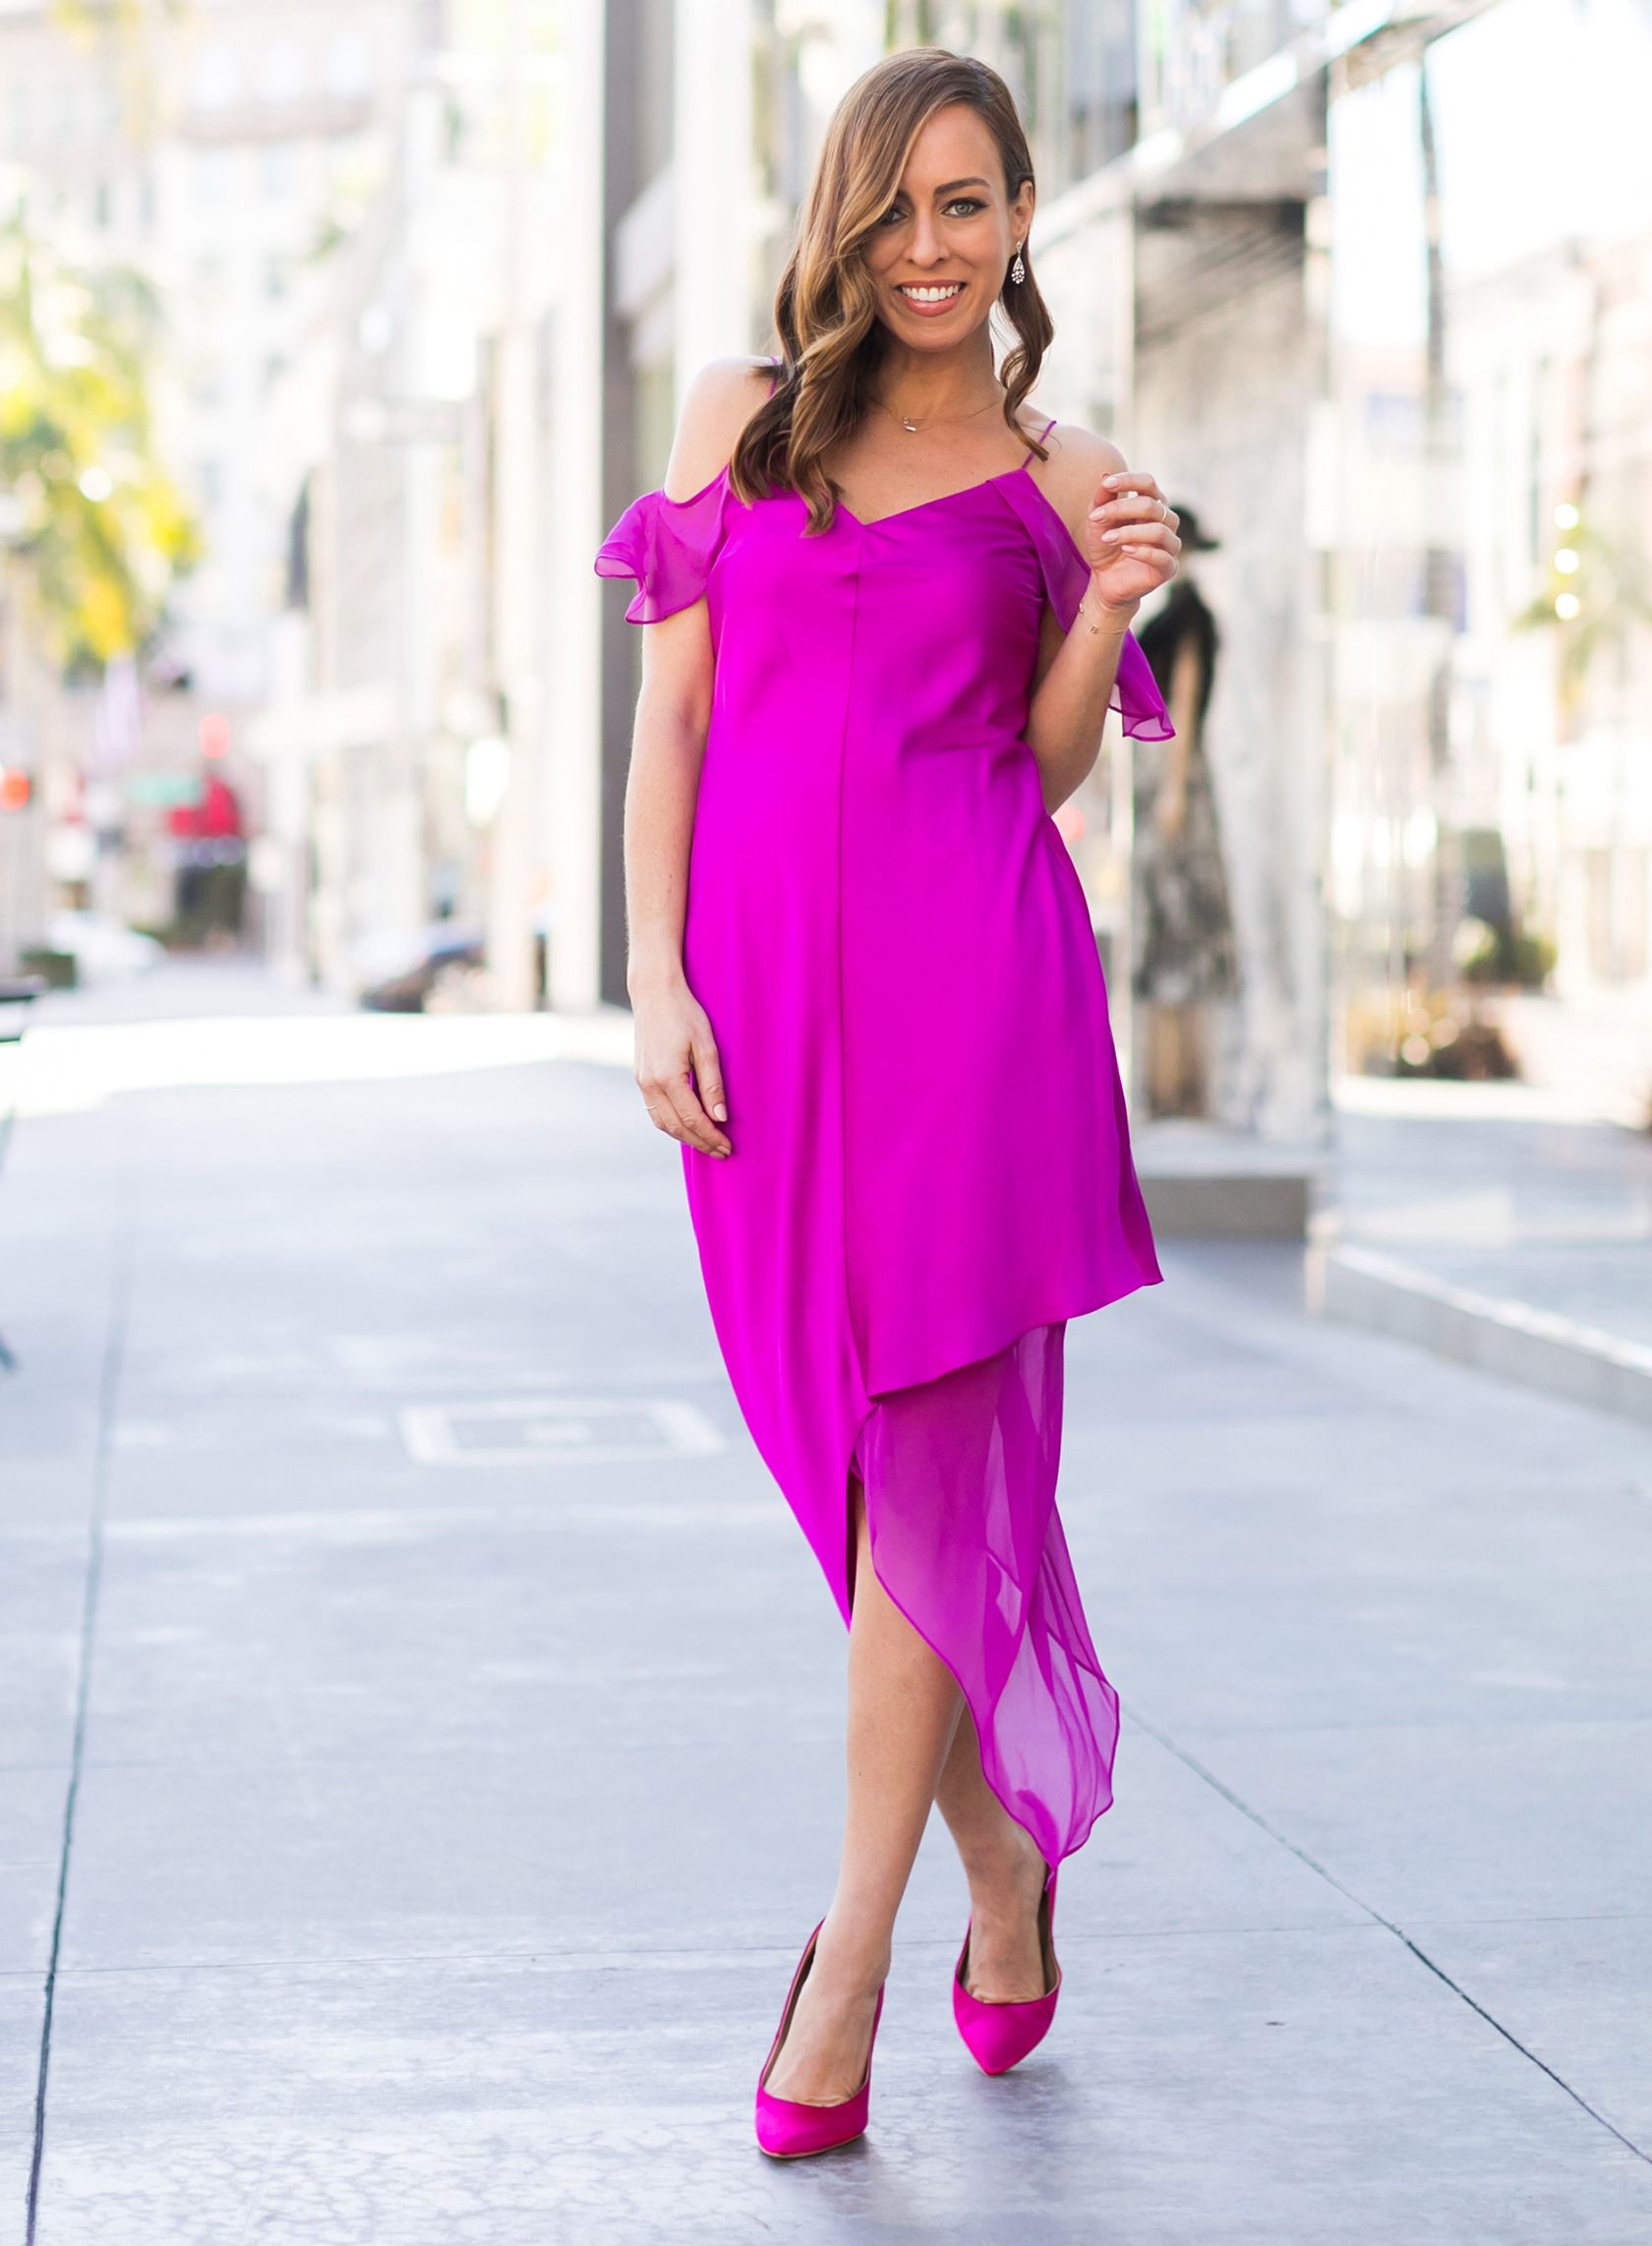 53d44e71c57a Sydne Style shows holiday party dress ideas in bright colors on sale at  saks off fifth